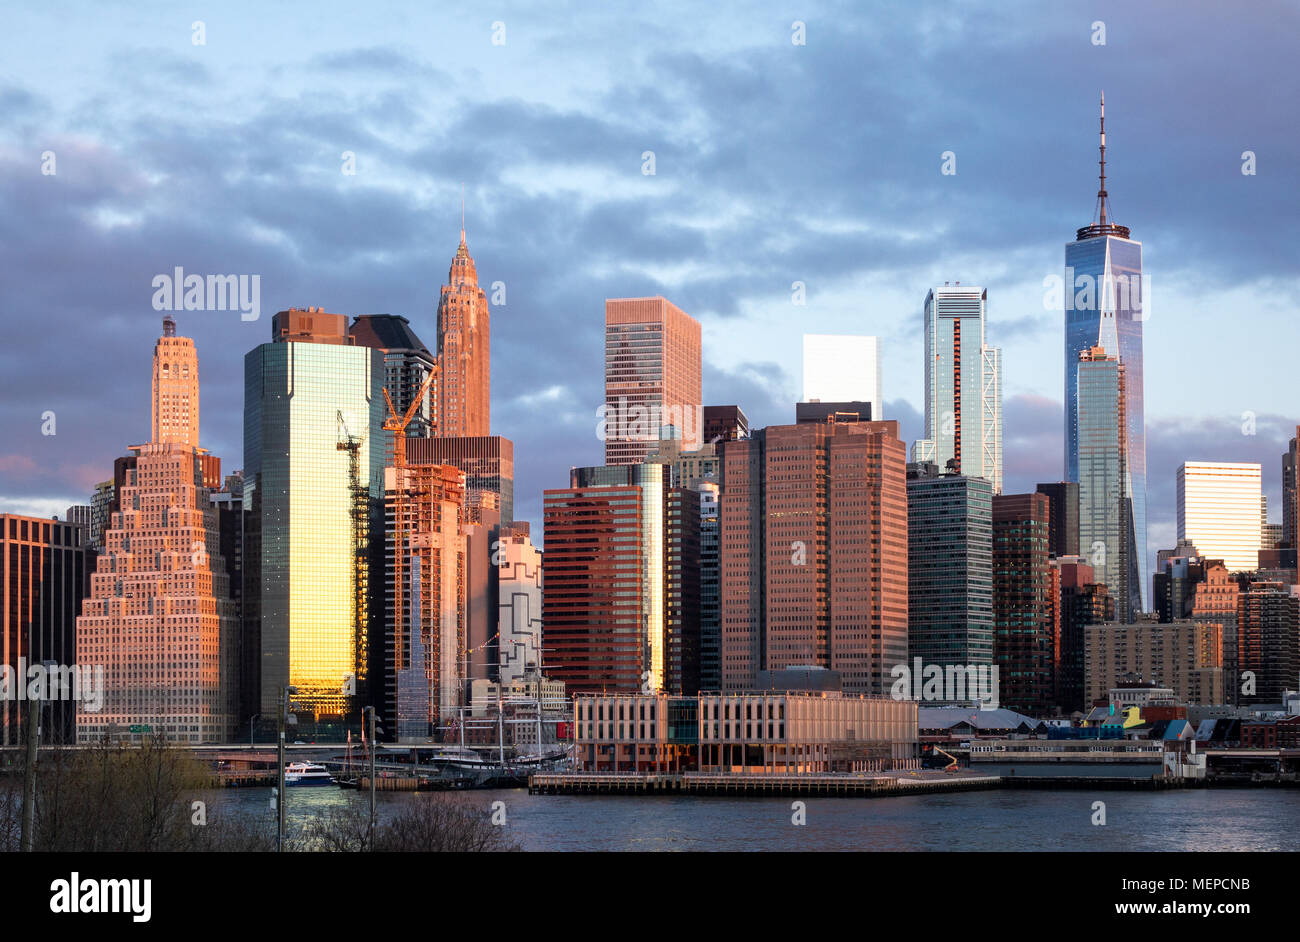 La parte inferiore di Manhattan lucernario come visto da Brooklyn all'alba Immagini Stock